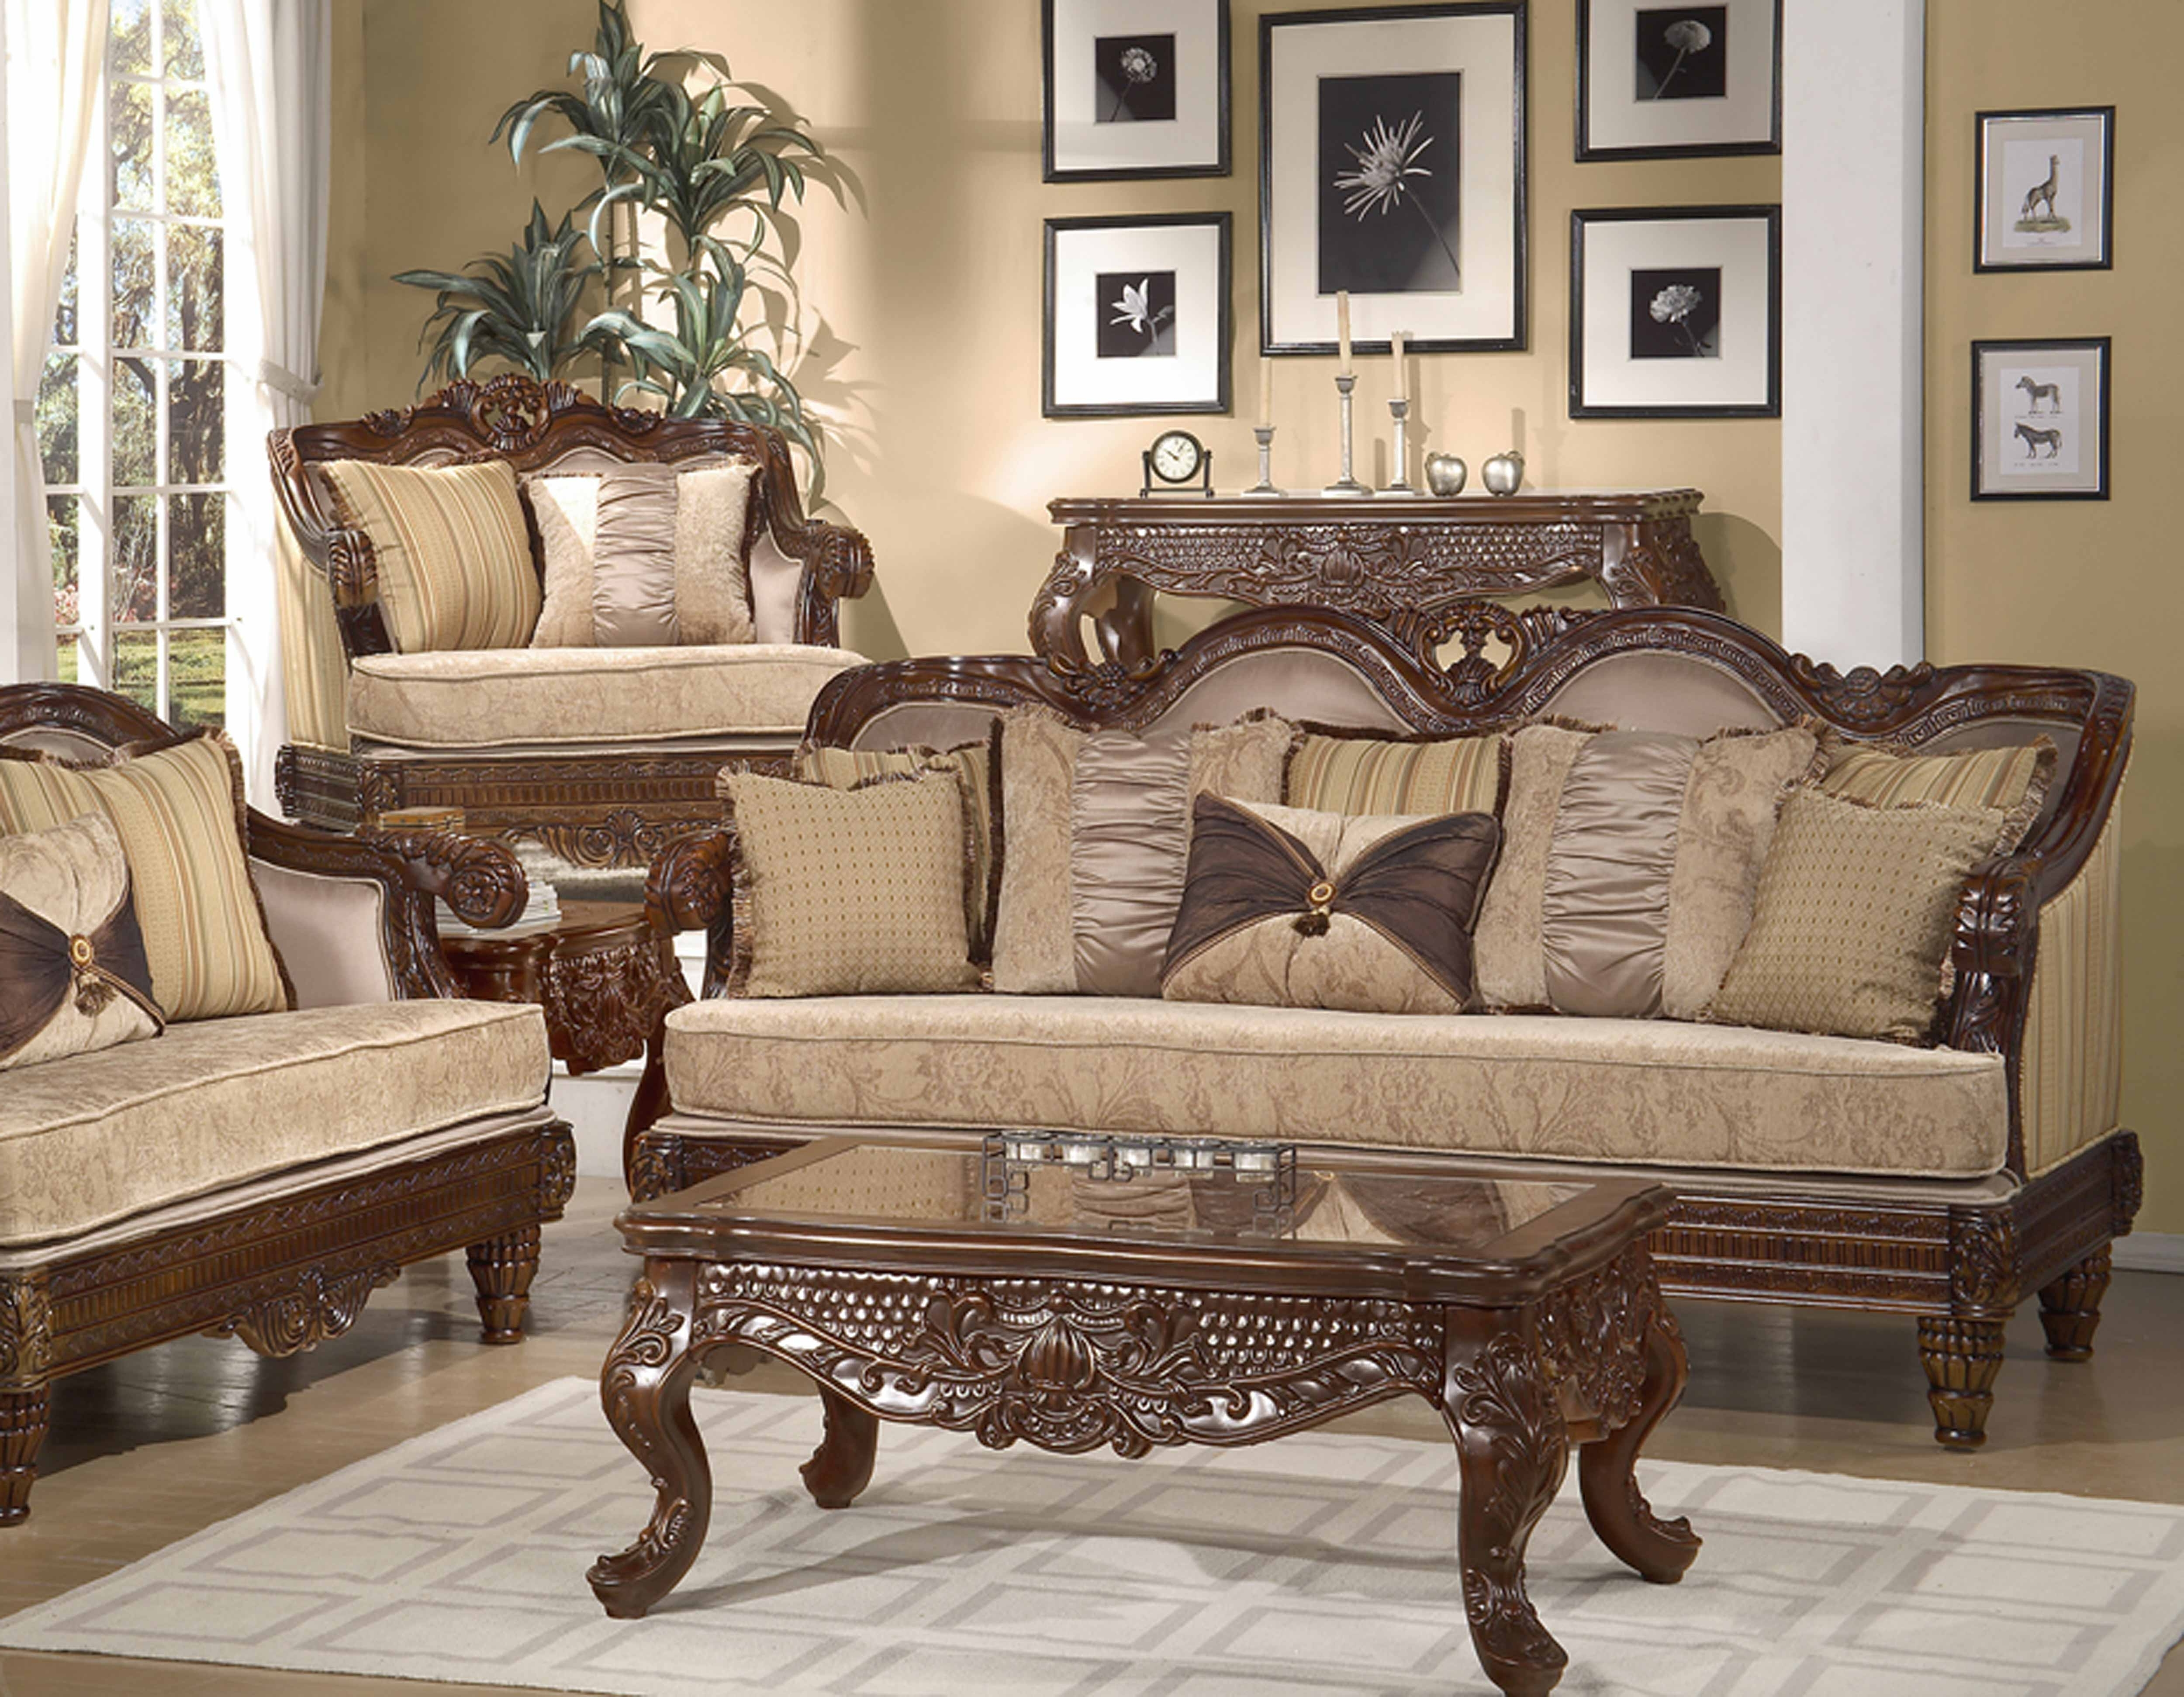 Uncategorized : Elegant Sofas With Stunning Formal Traditional Pertaining To Fashionable Traditional Sofas (View 17 of 20)